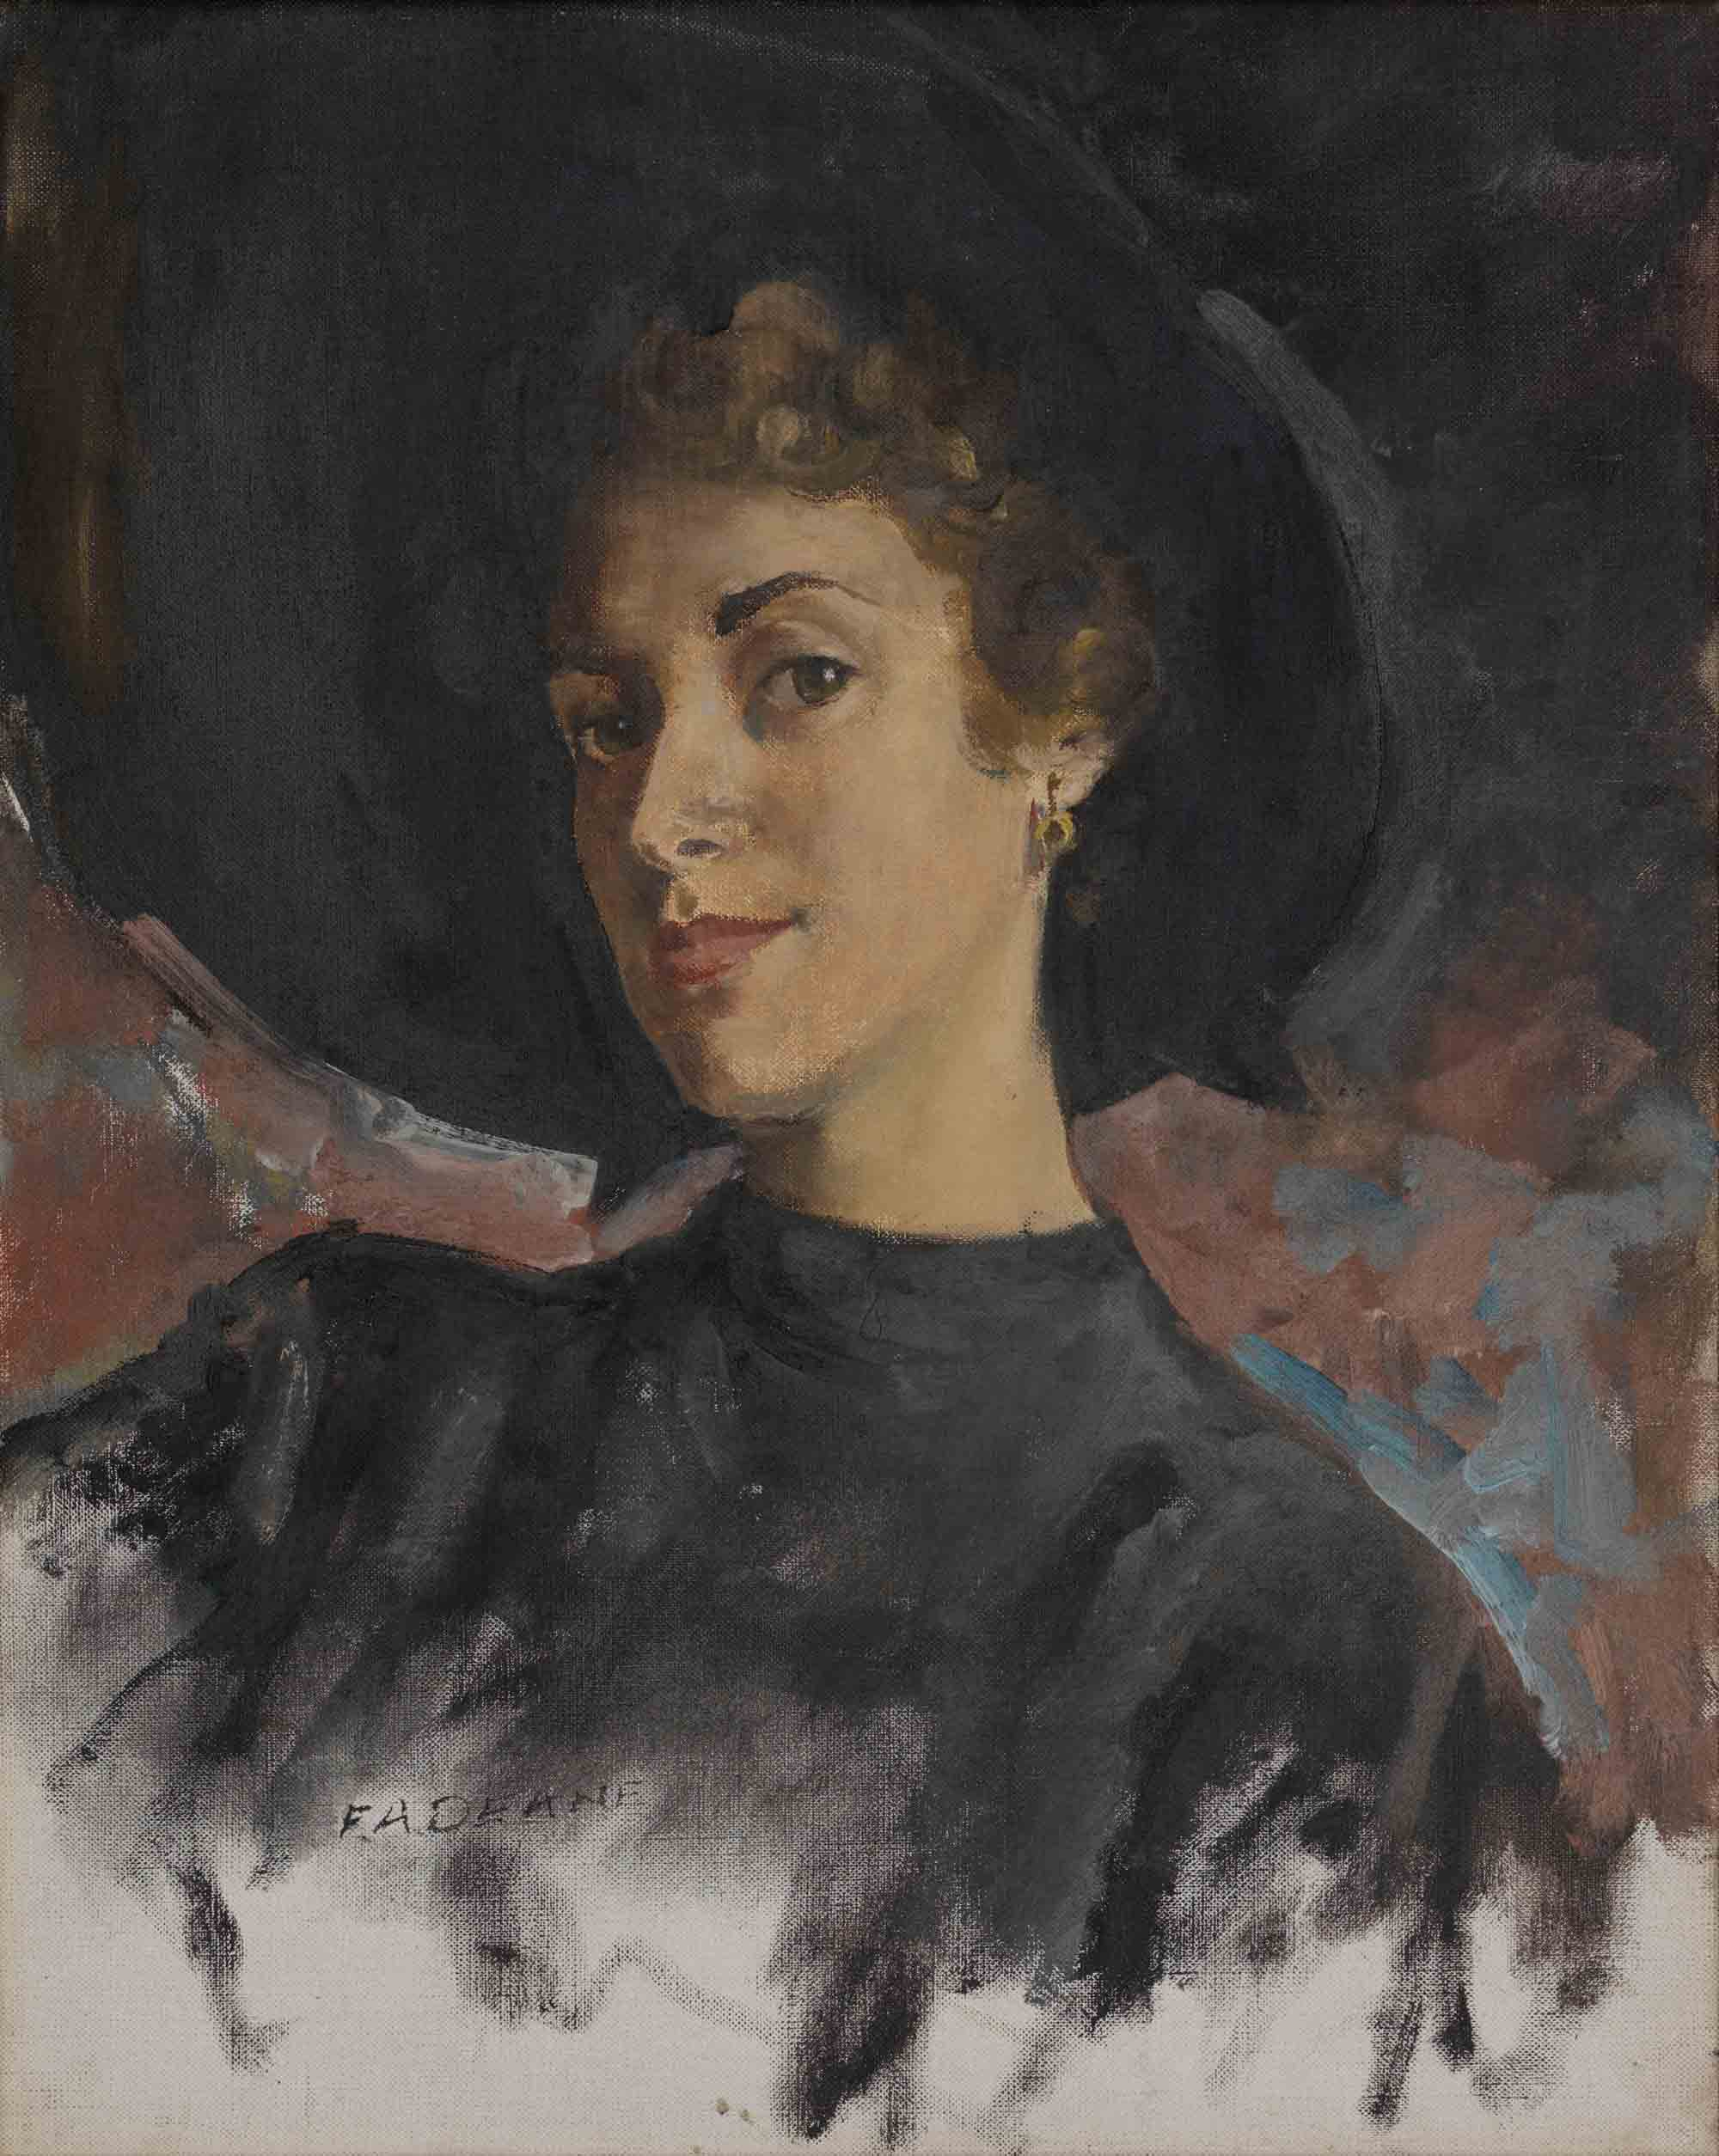 Frederick Deane, Untitled (Rhona Lanzon), c.1950, Oil on Canvas, 20 x 16 inches. Ref: R/AeroGirls. Borthwick Institute for Archives. By permission of Nestlé UK.